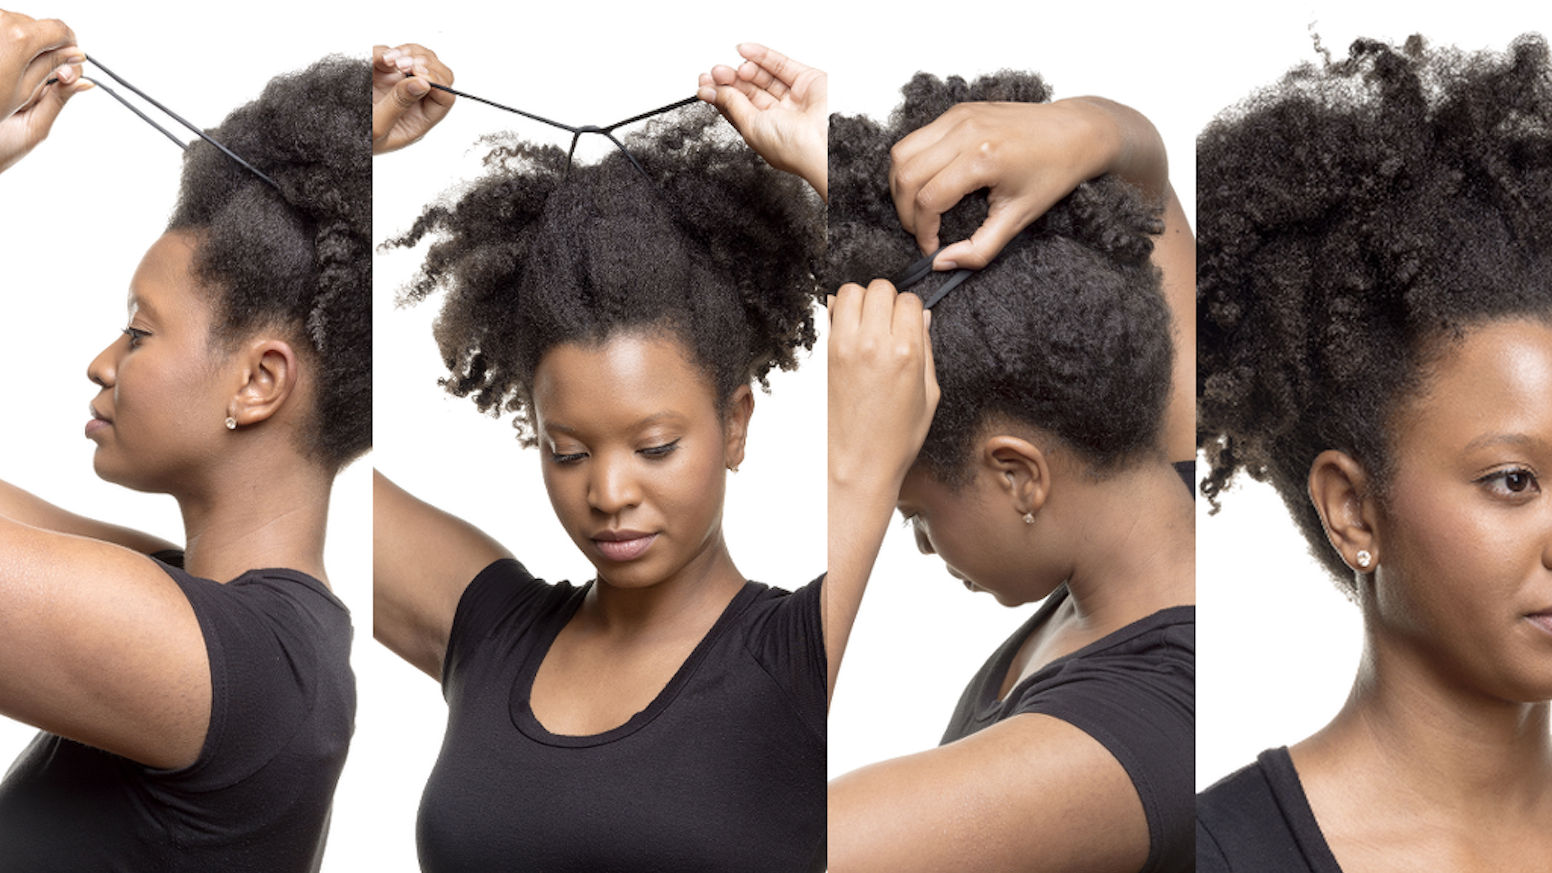 Create more than 50+ hair styles without the worry of damaging your hair or breaking your hairties